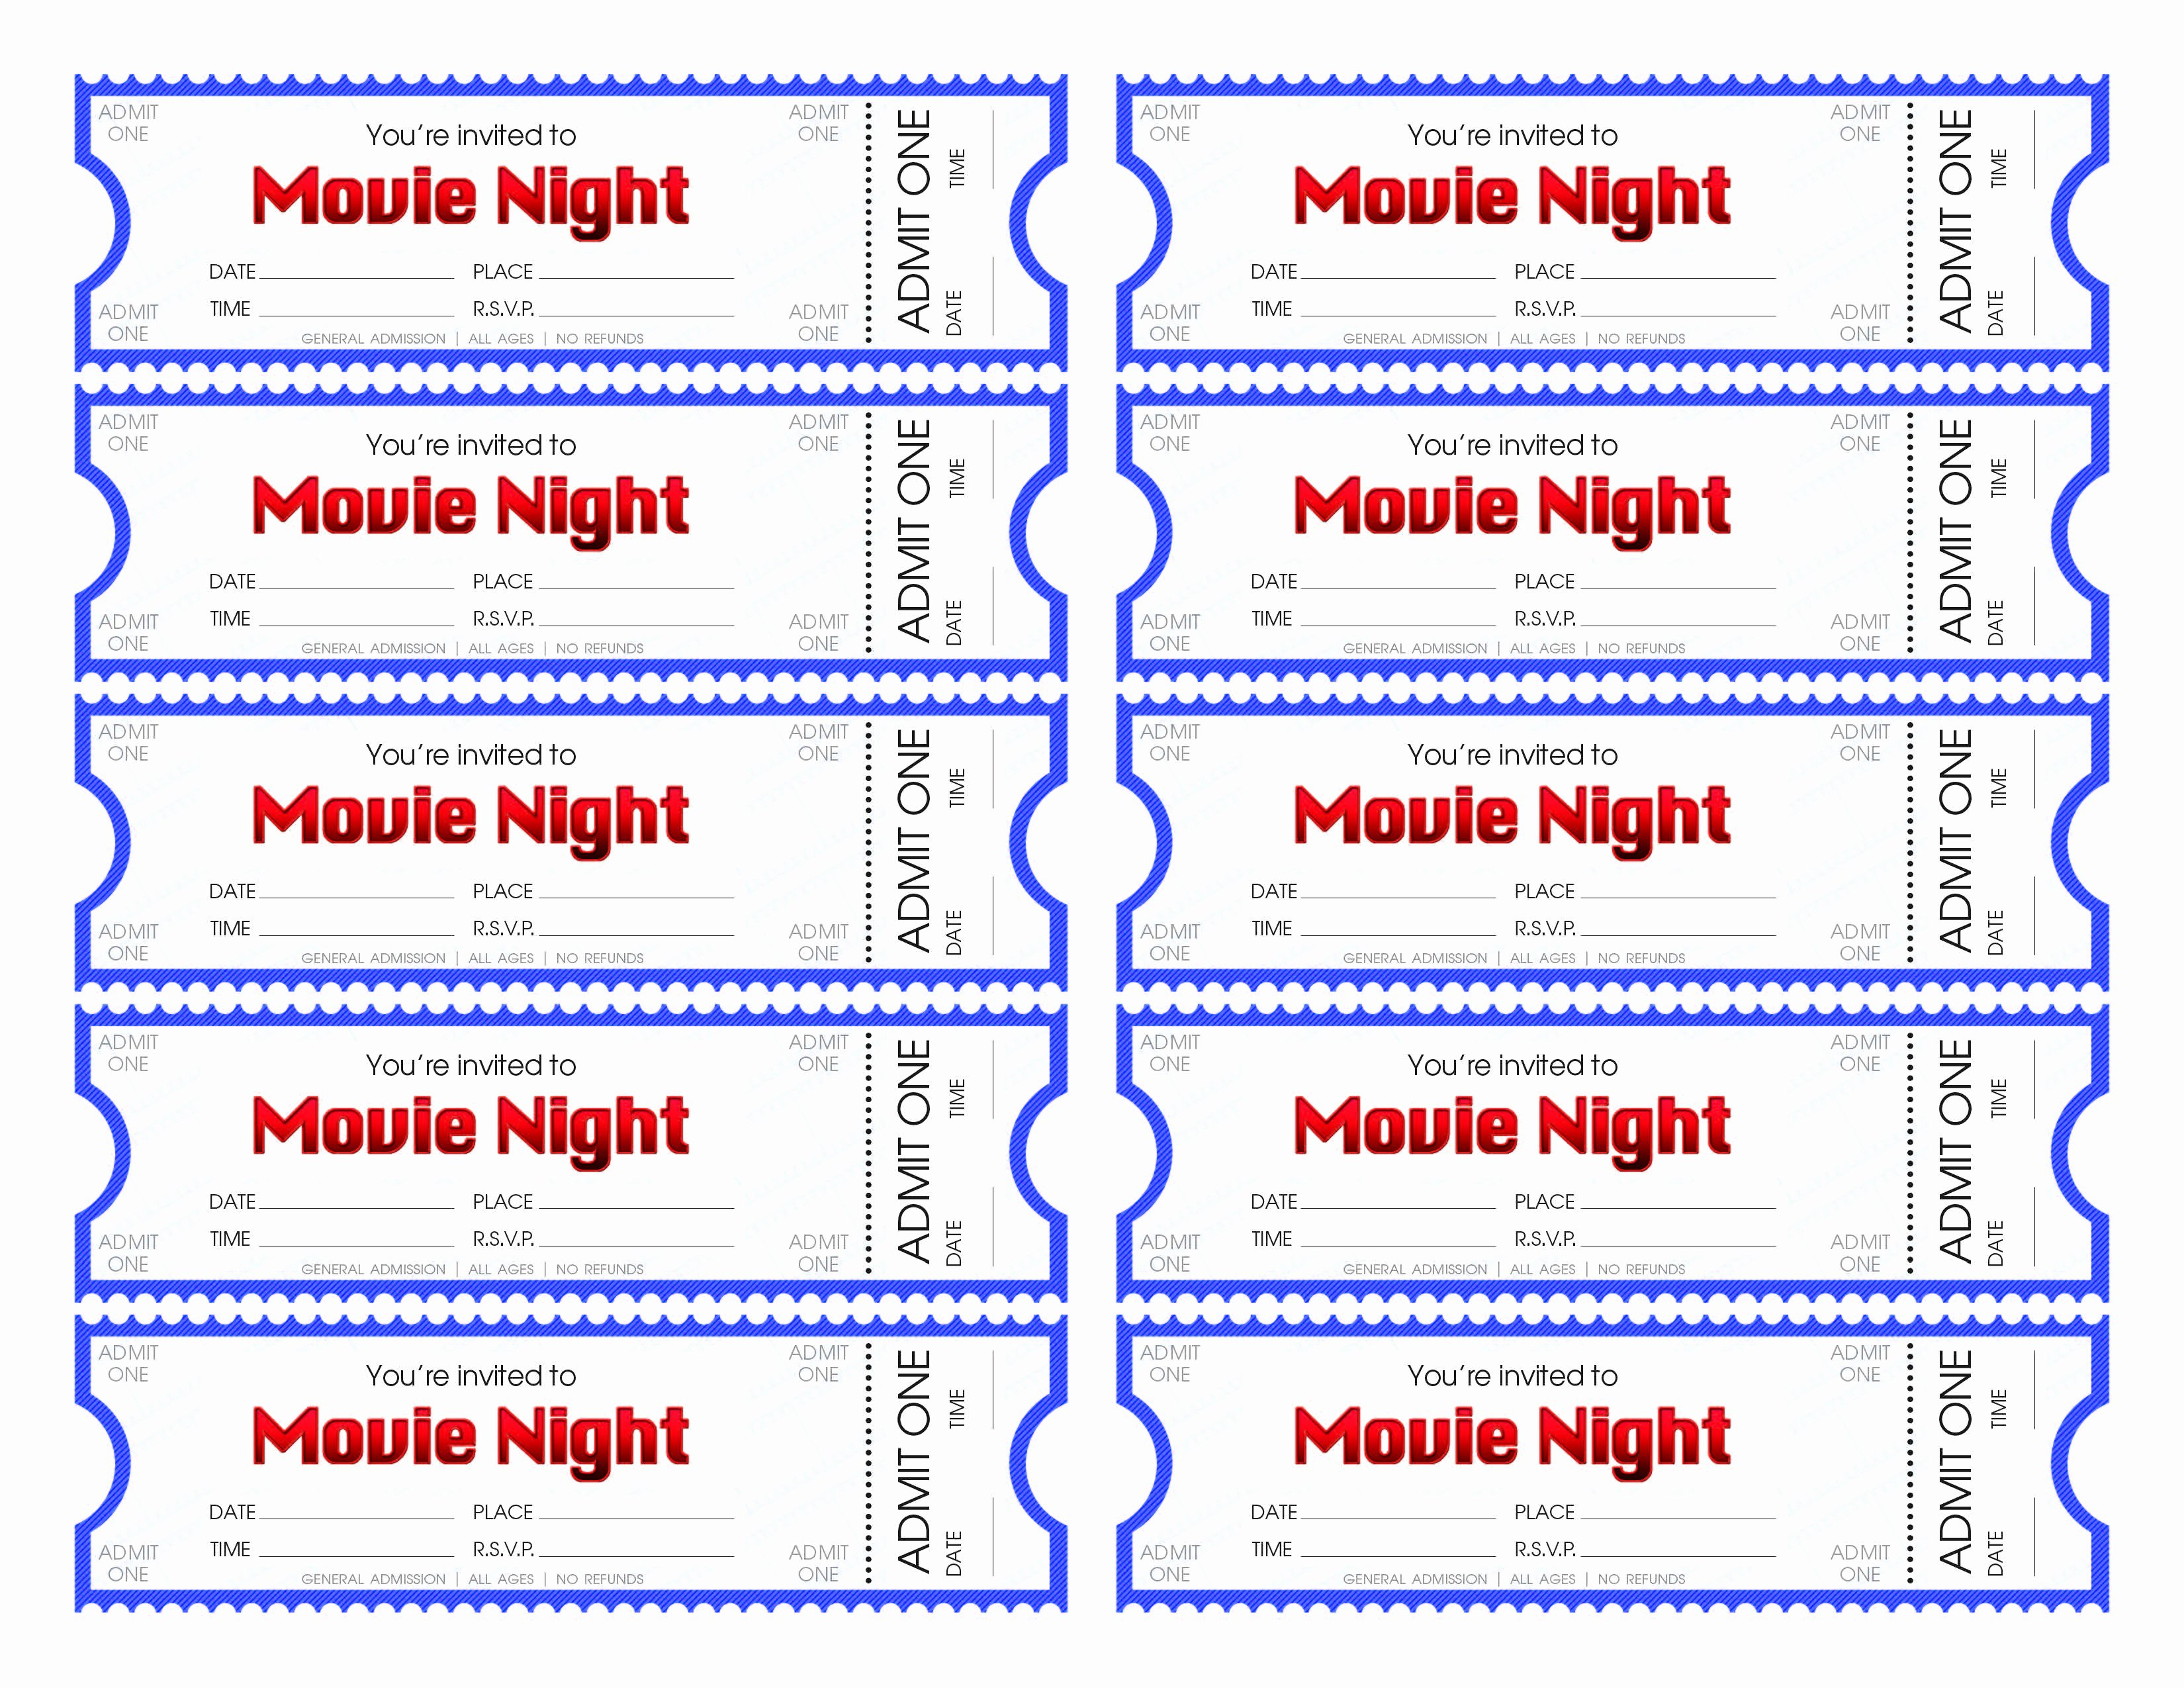 Free Movie Ticket Template Beautiful Make Your Own Movie Night Tickets